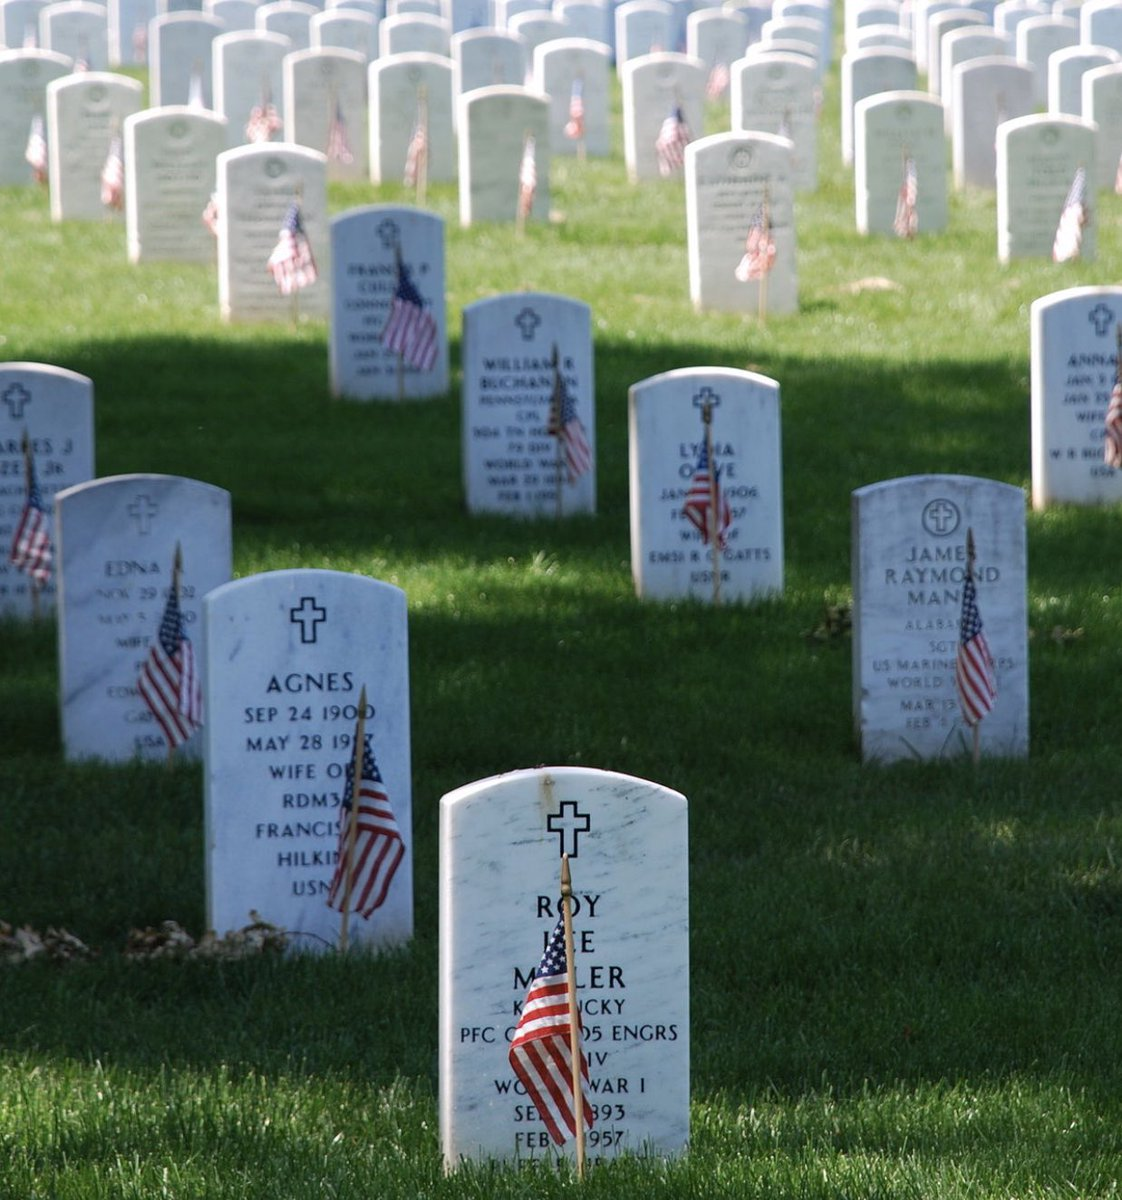 Today we honor those who gave their lives in service to our country, and the families who grieve them.   #MemorialDay